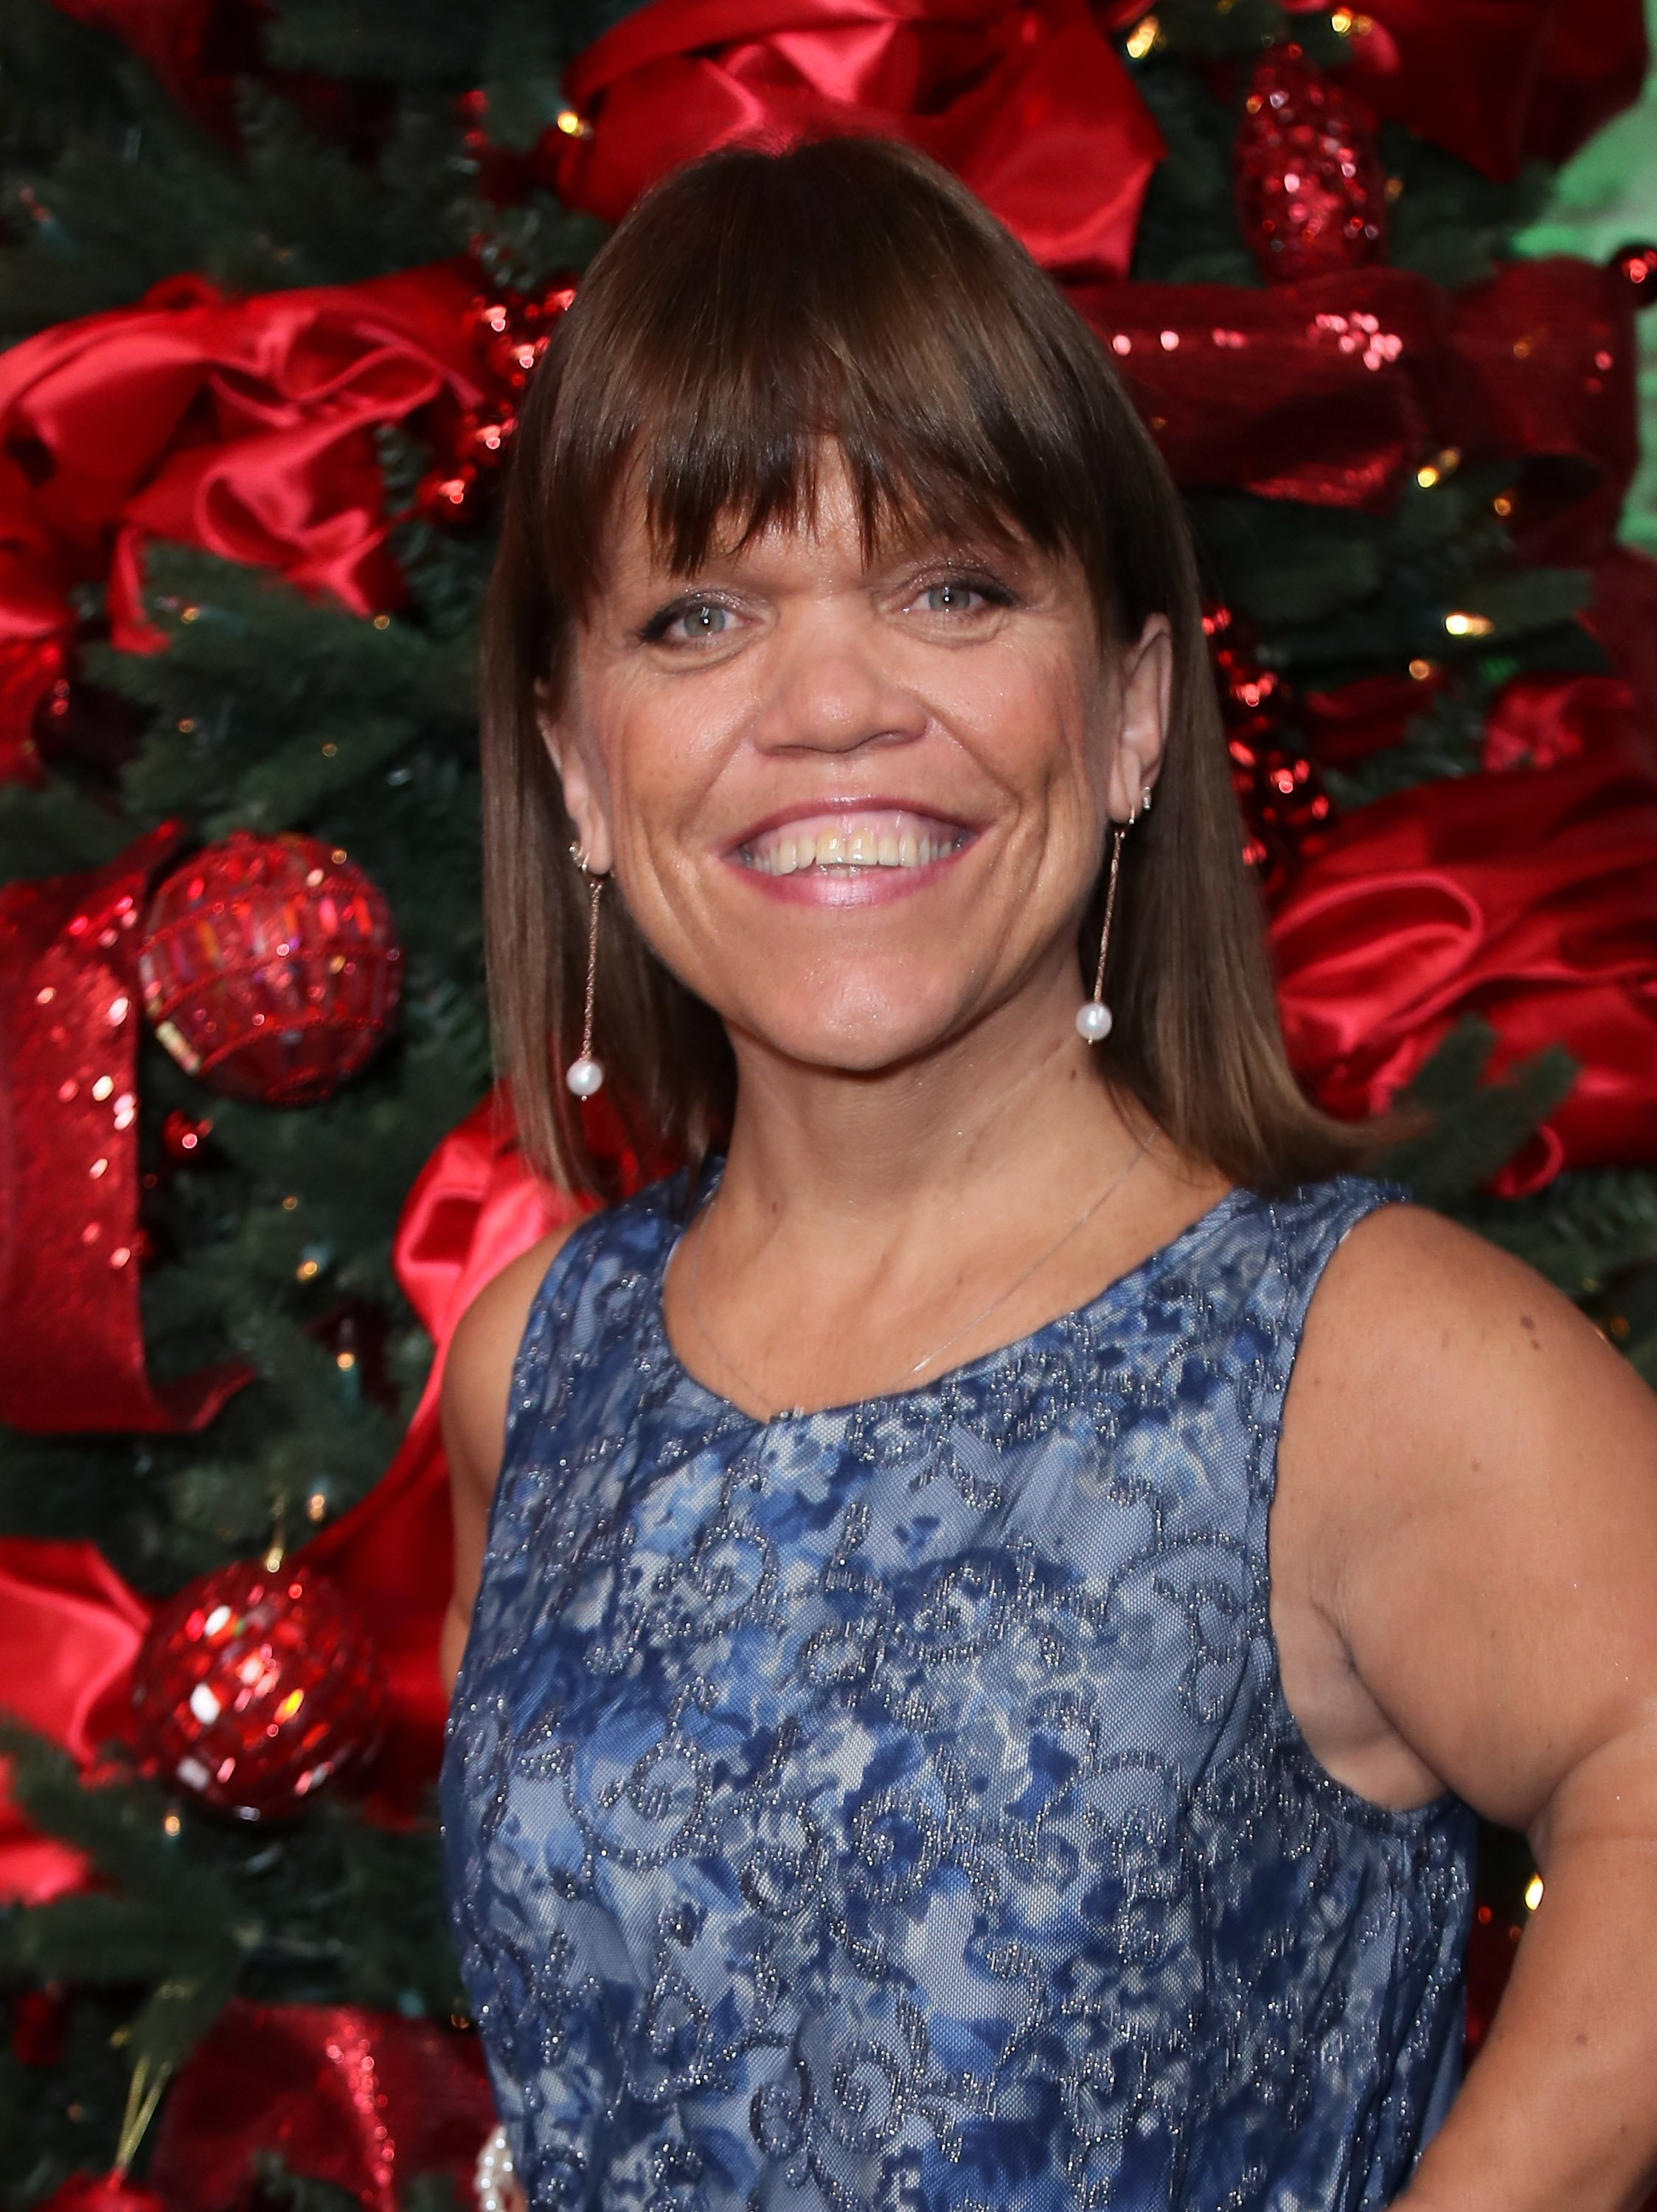 """""""LPBW"""" star Amy Roloff is engaged to Chris Marek, after ending her marriage with Matt Roloff in 2016.   Photo: Getty Images"""